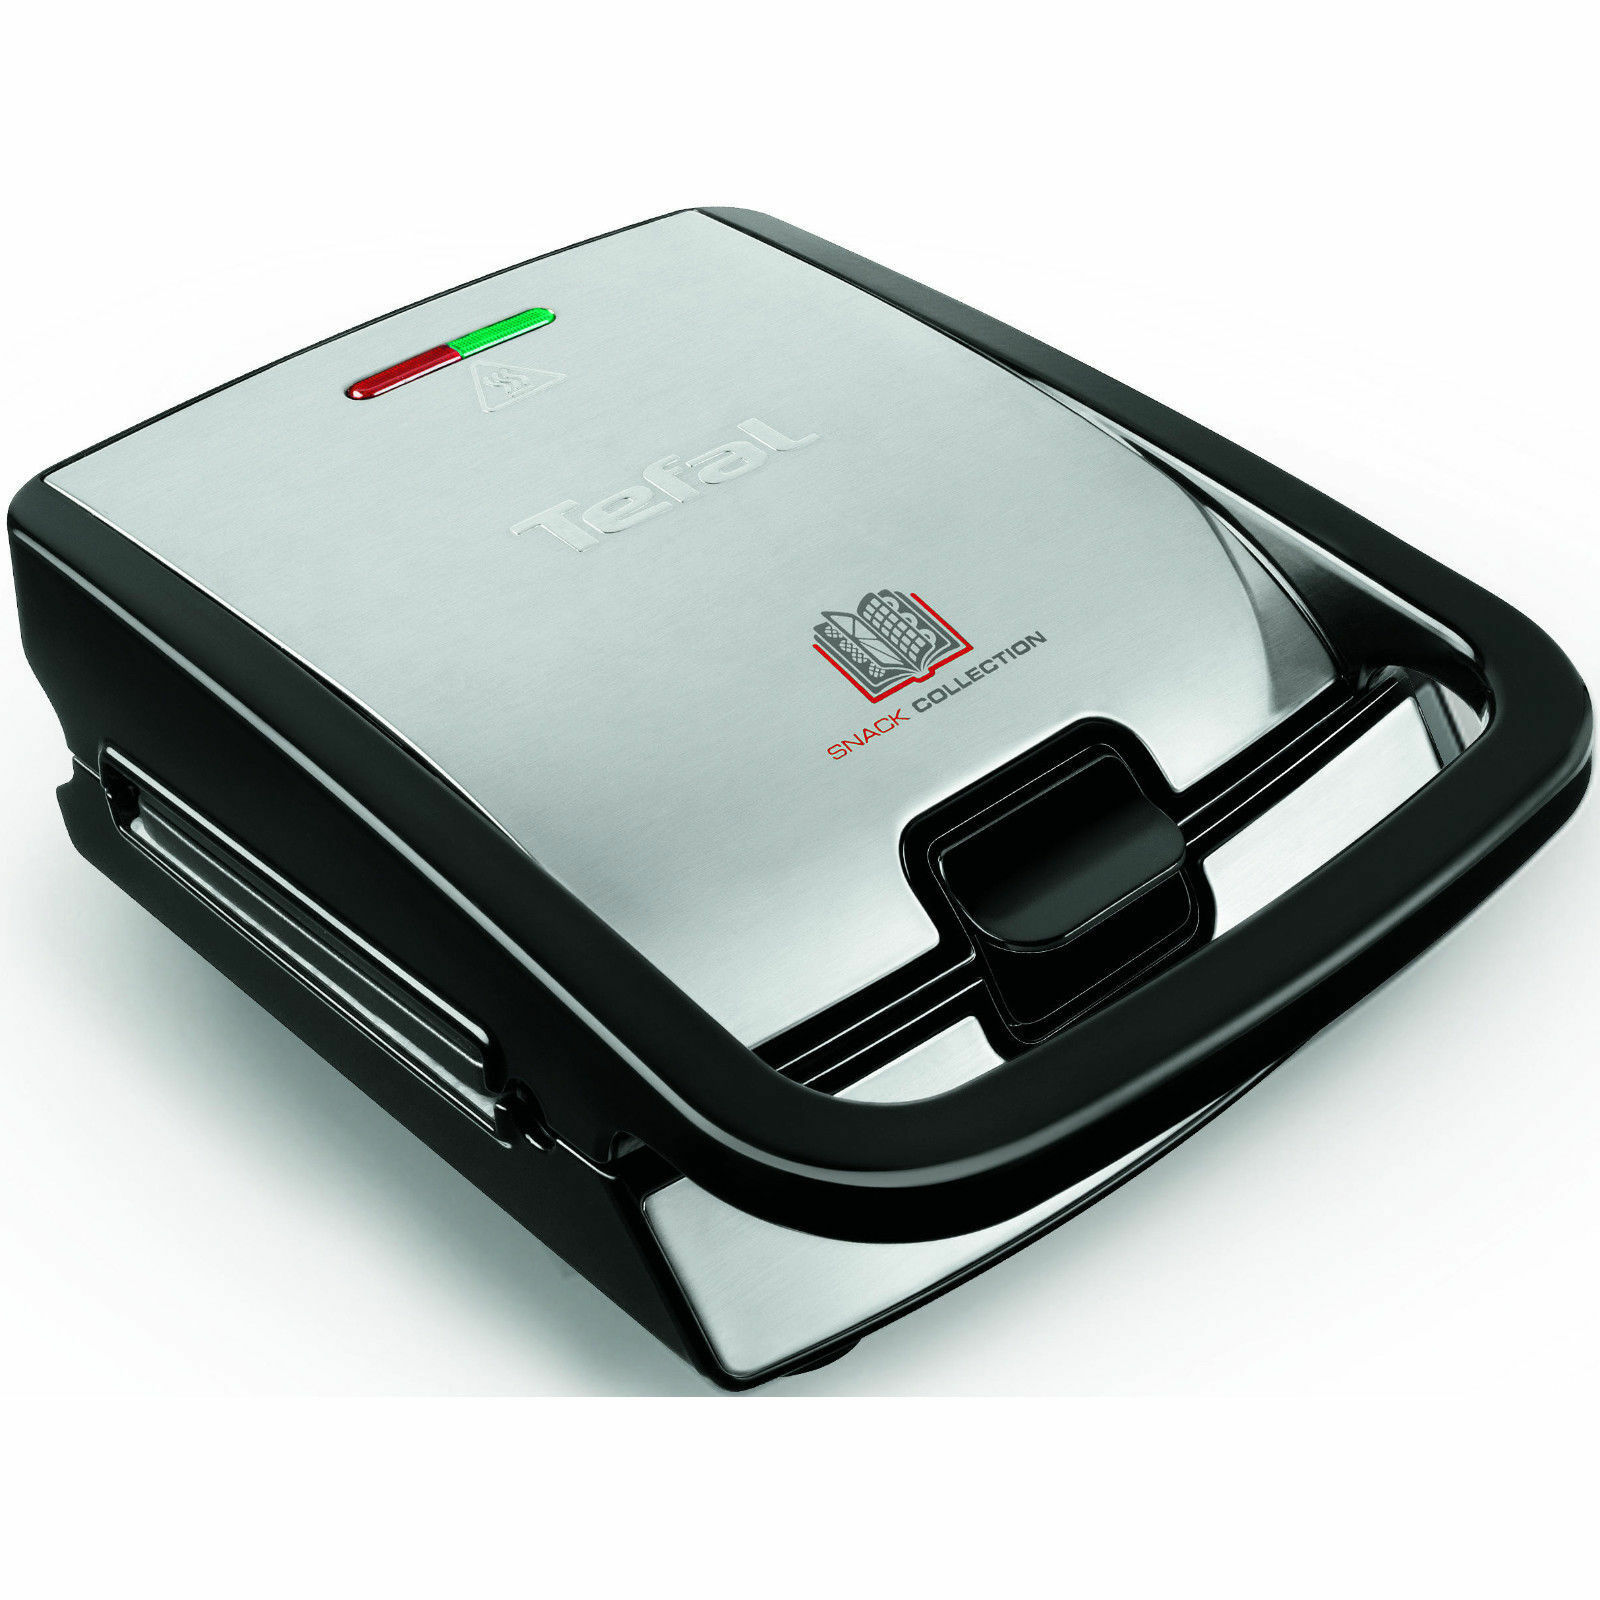 tefal sw 852d waffeleisen snack collection sandwichmaker neu ovp eur 62 90 picclick de. Black Bedroom Furniture Sets. Home Design Ideas